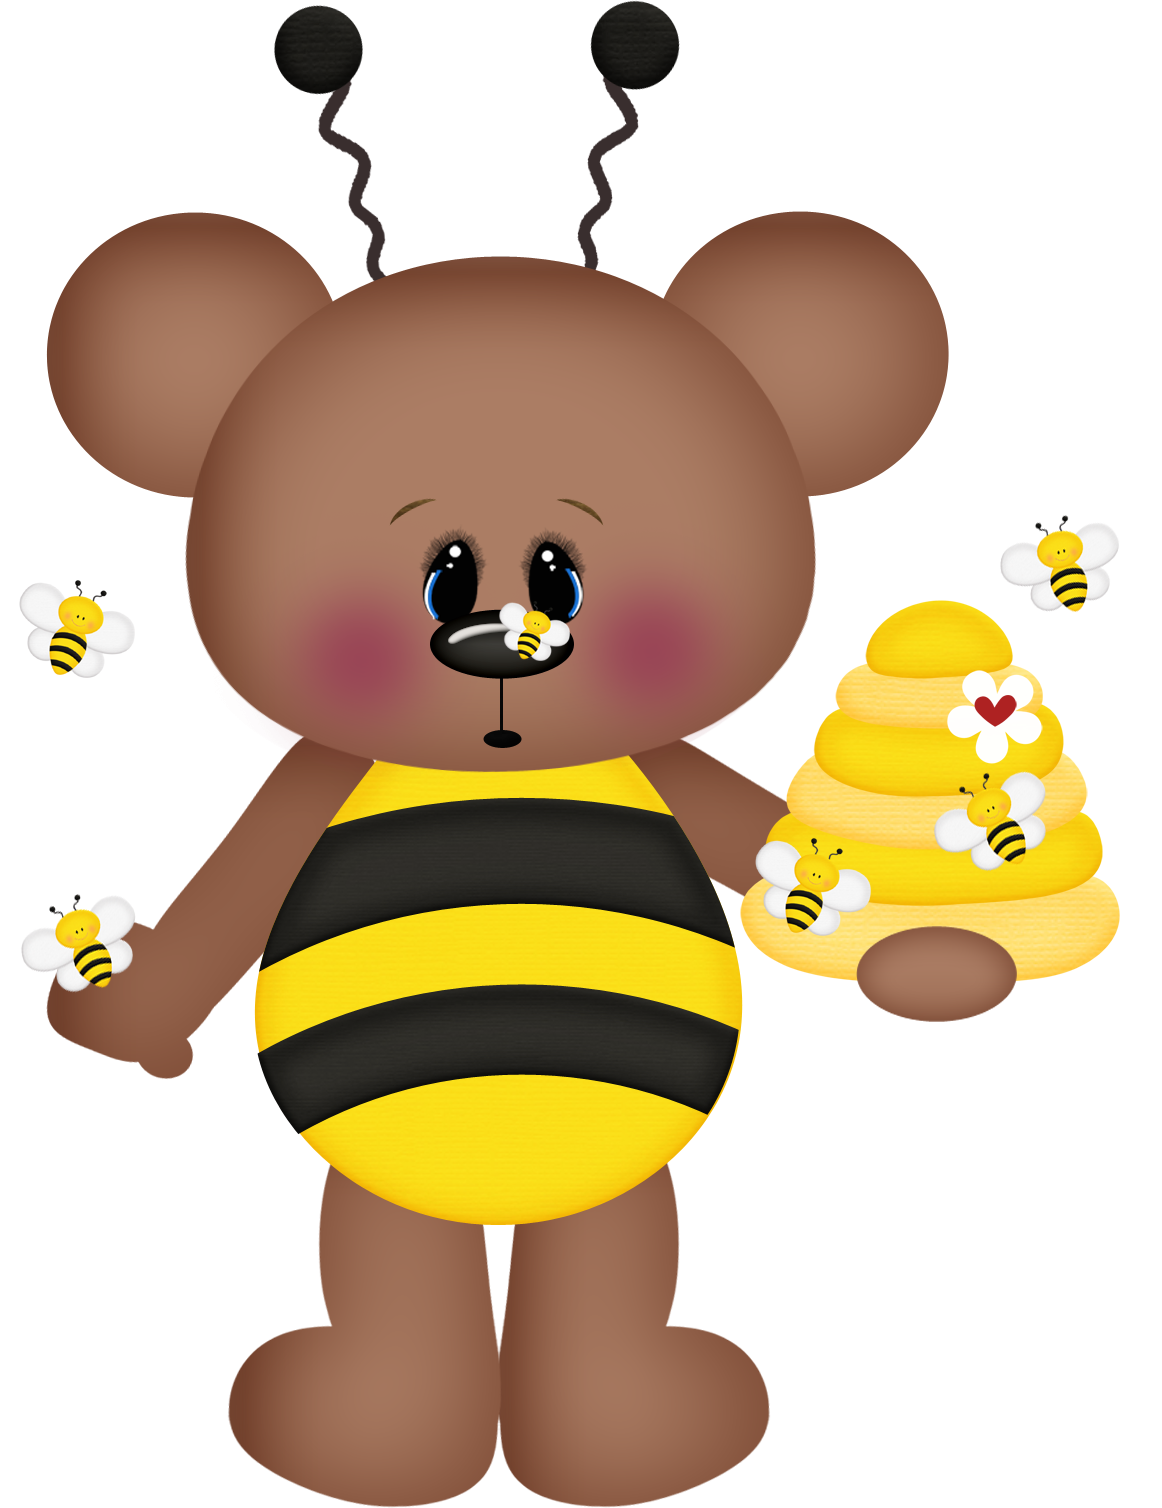 png royalty free Bumble clipart busy bee. Photo by daniellemoraesfalcao minus.